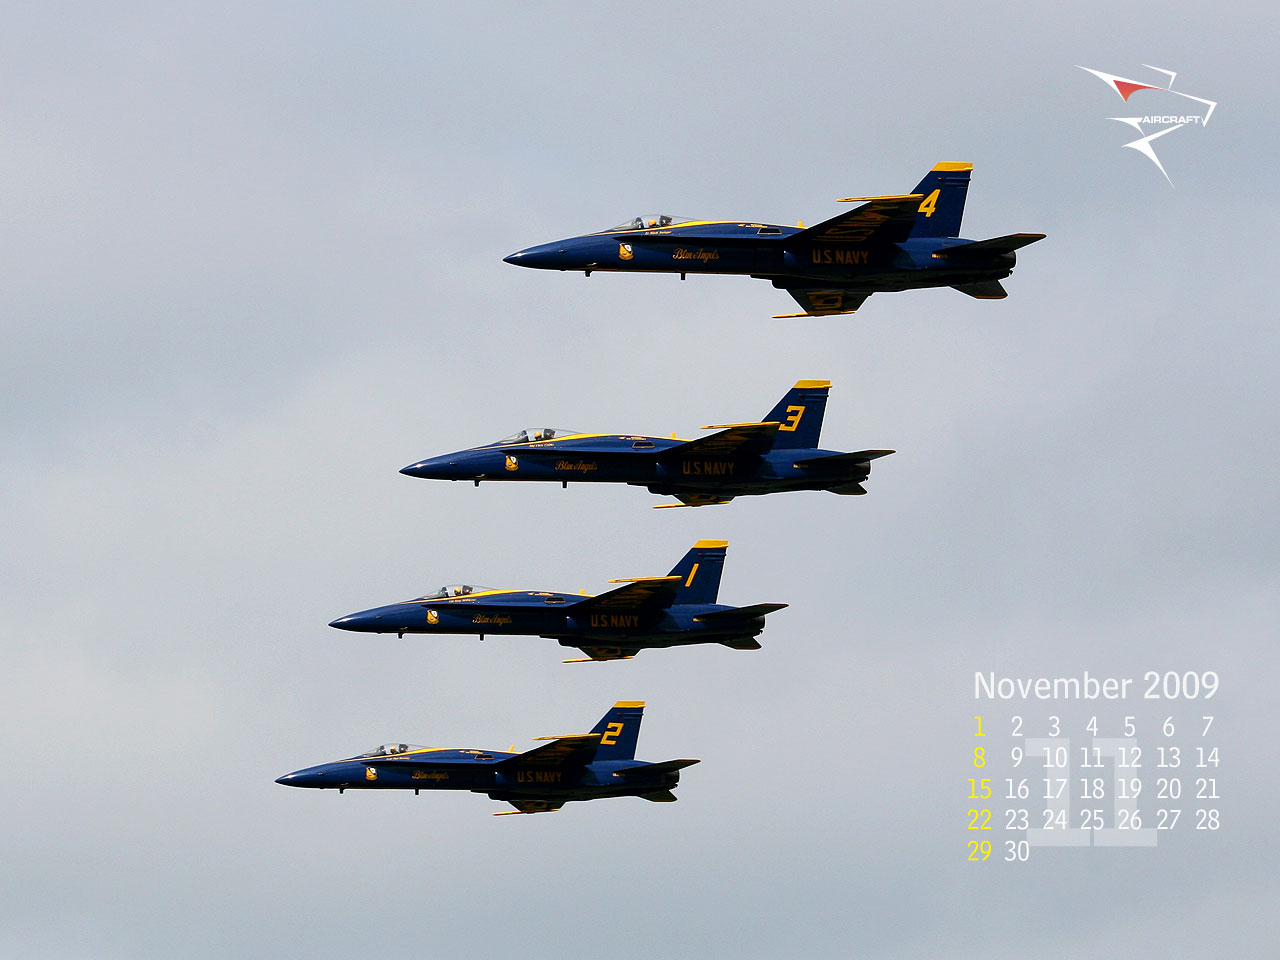 0035_blue_angels_1280x960_wallpaper.jpg